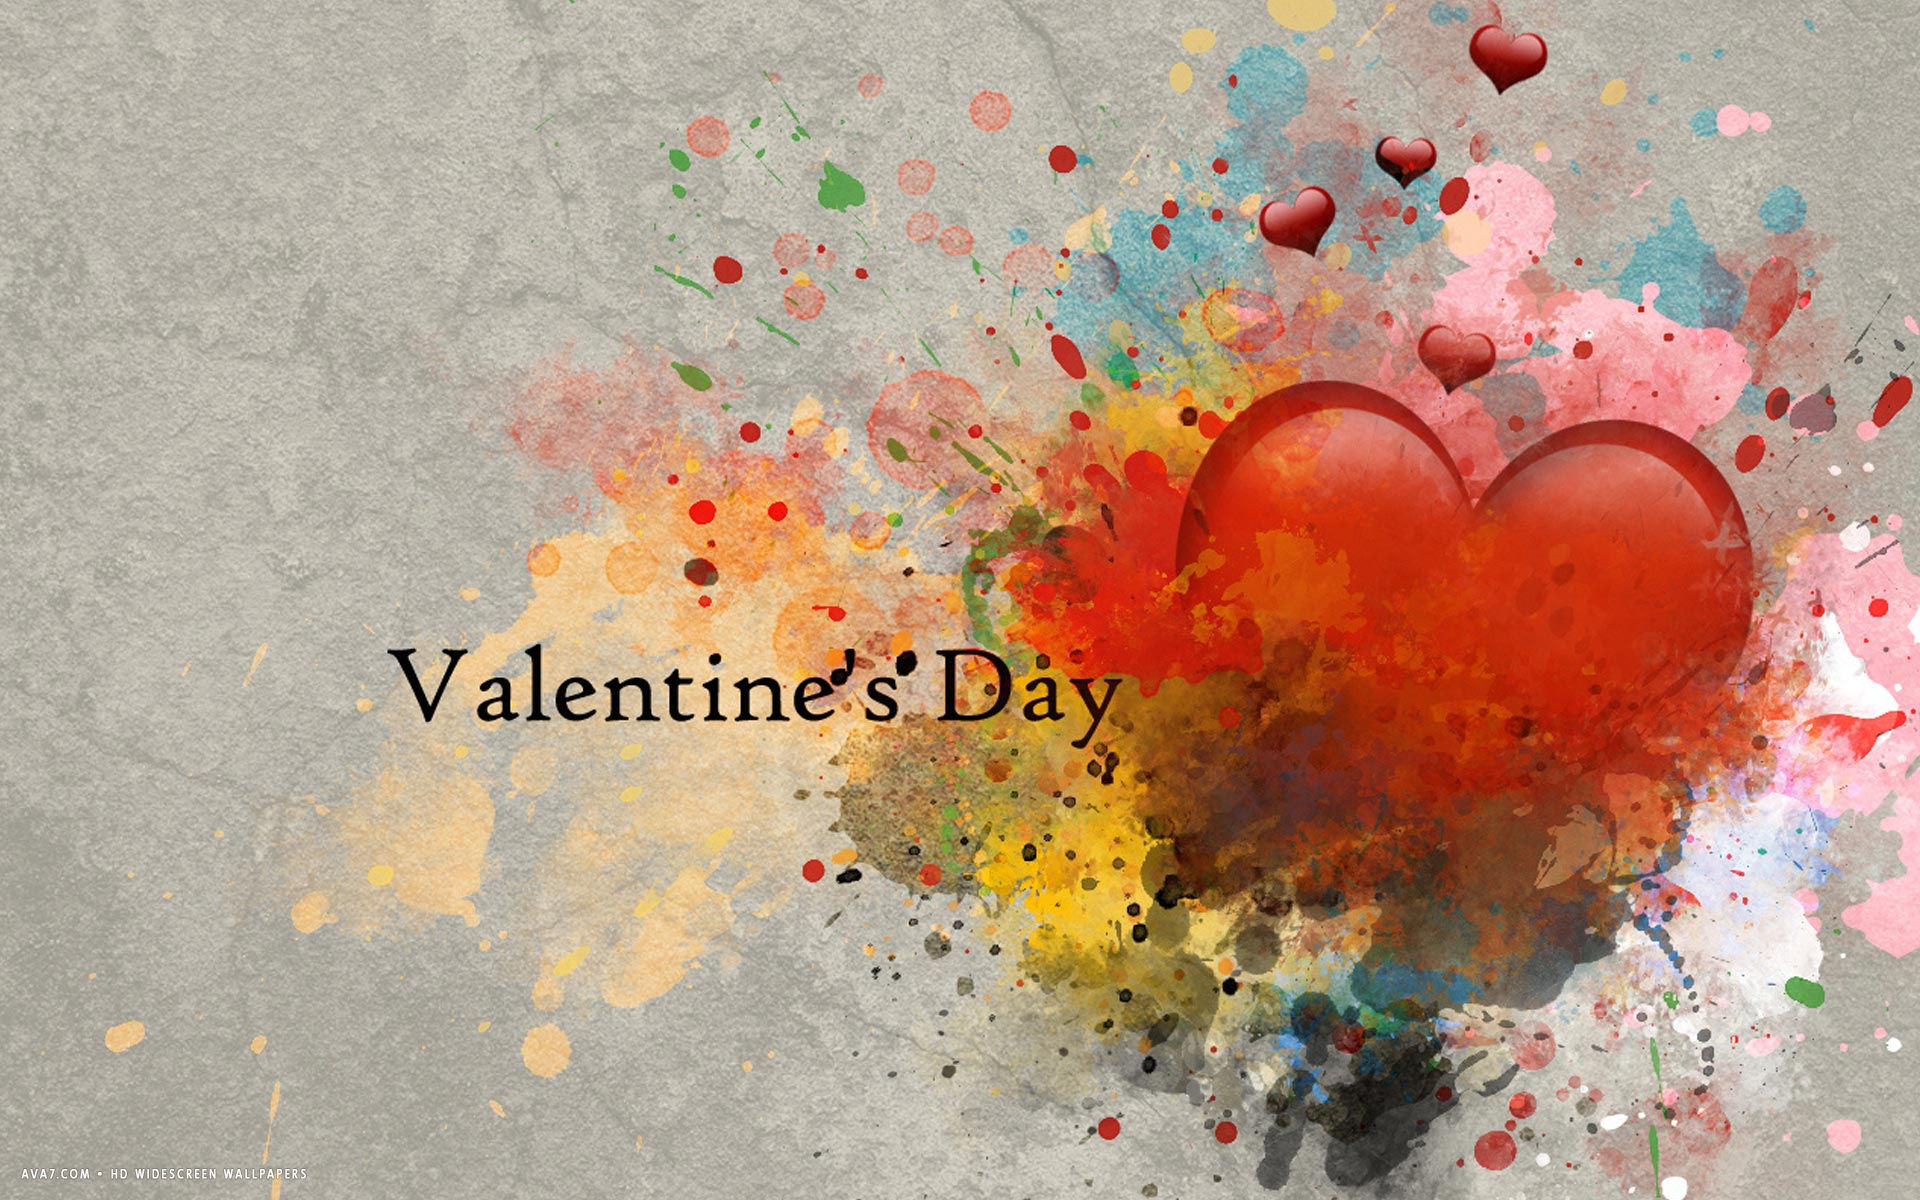 Valentines Day Red Heart Abstract Love Hd Widescreen Wallpaper